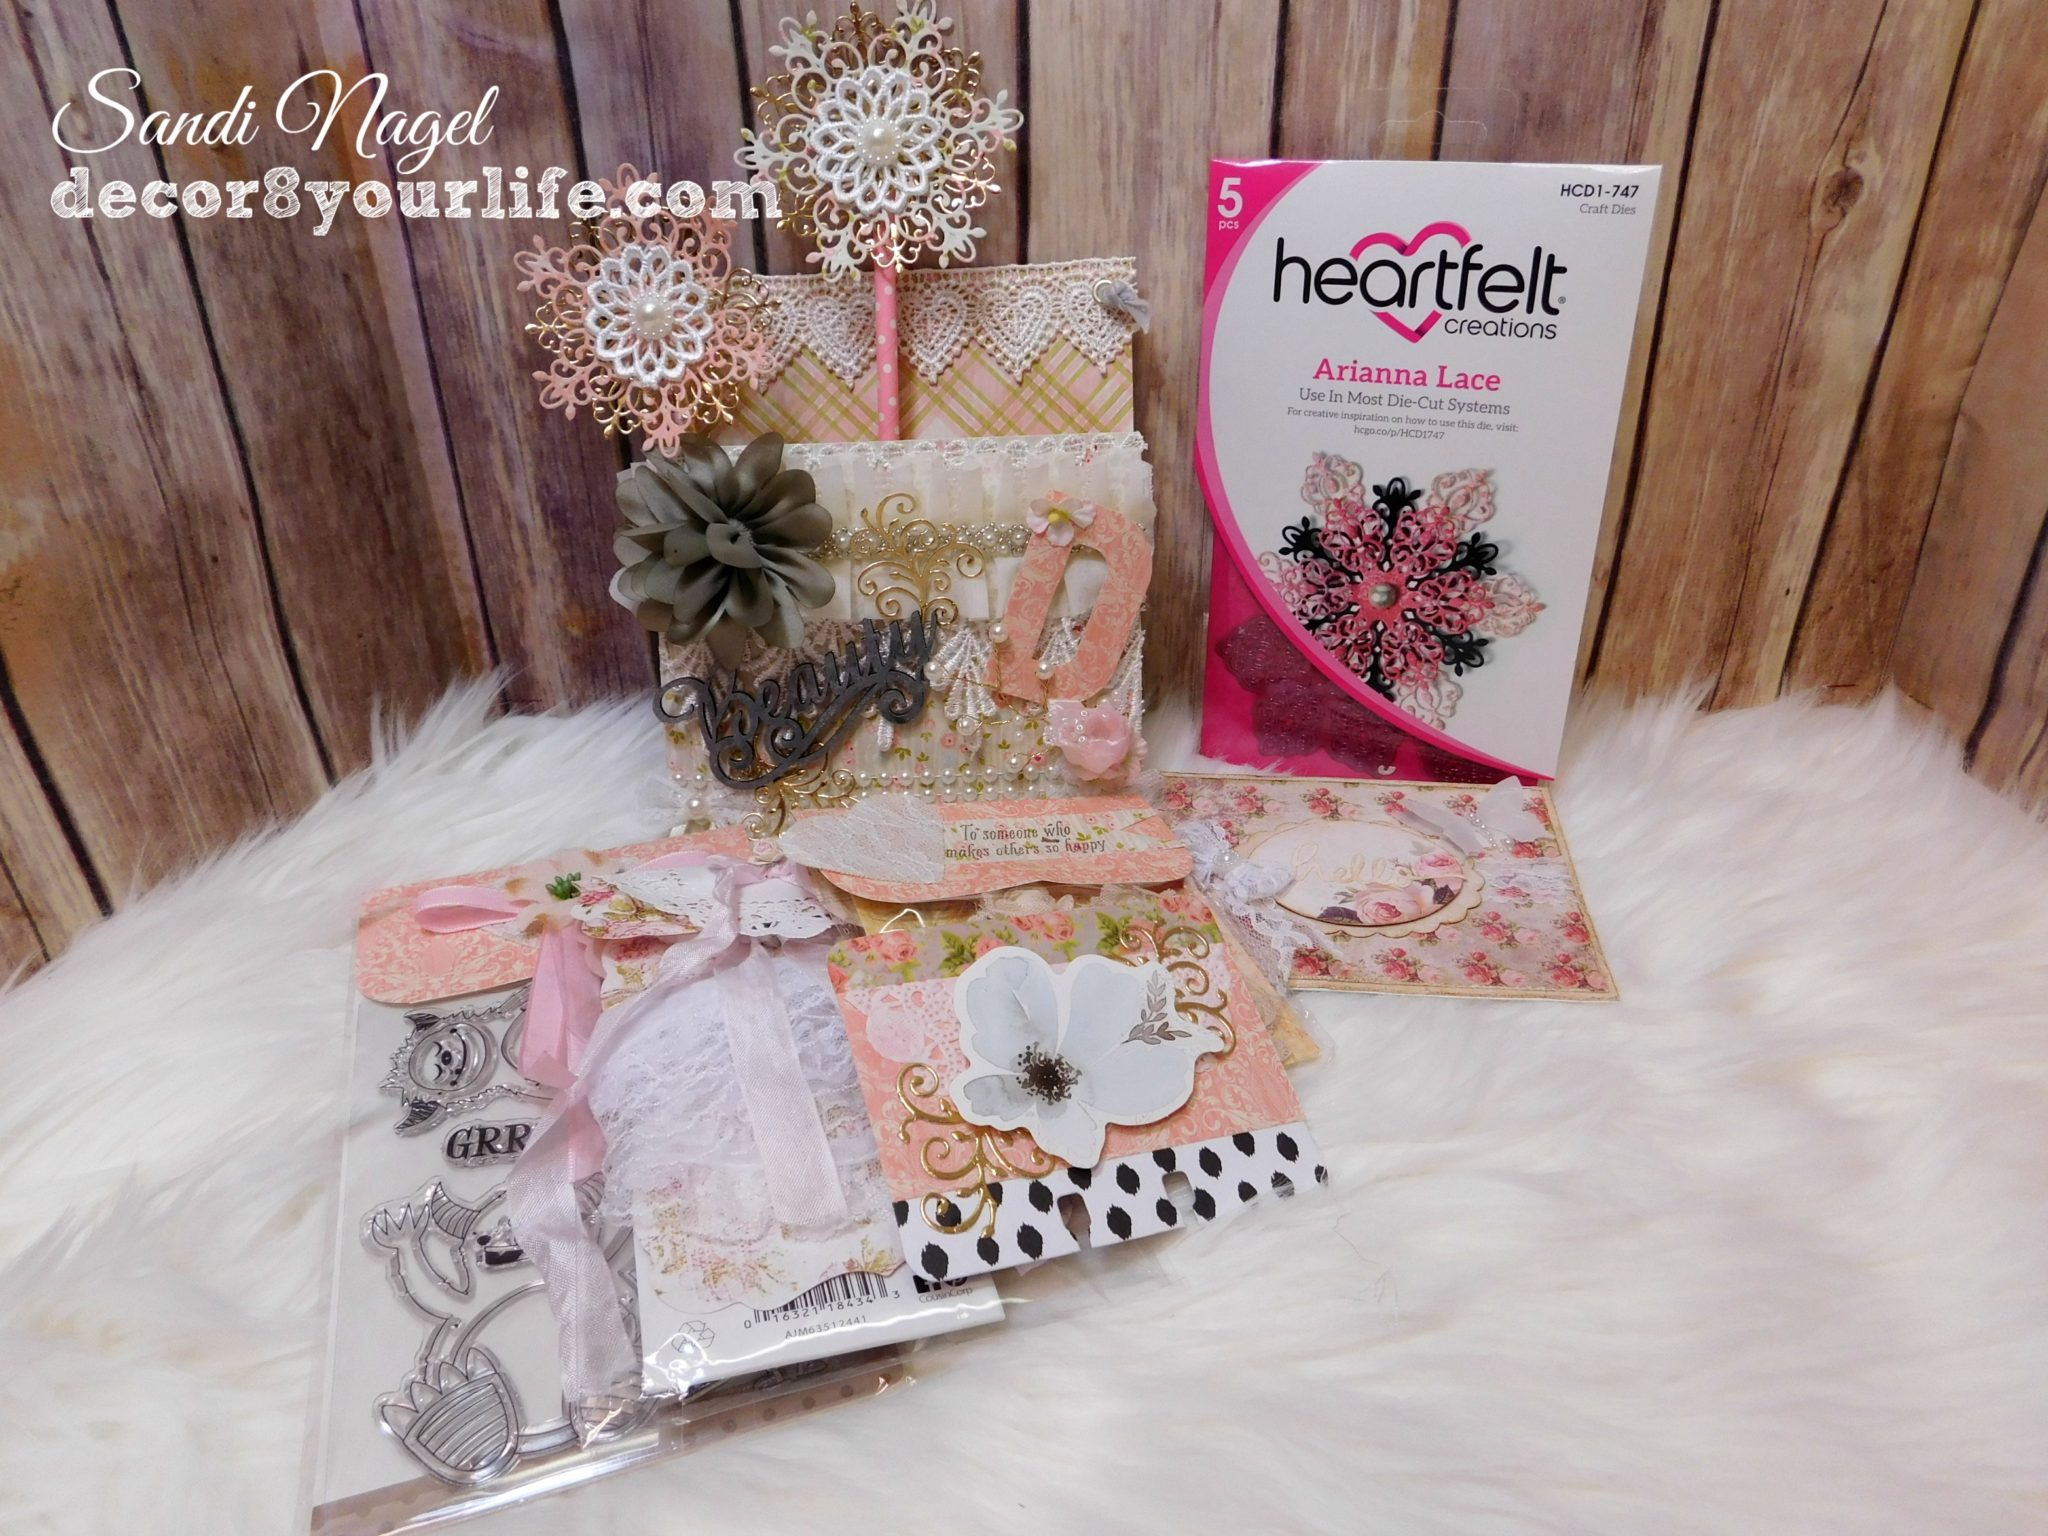 Heartfelt Creations Arianna Lace HCD1-747